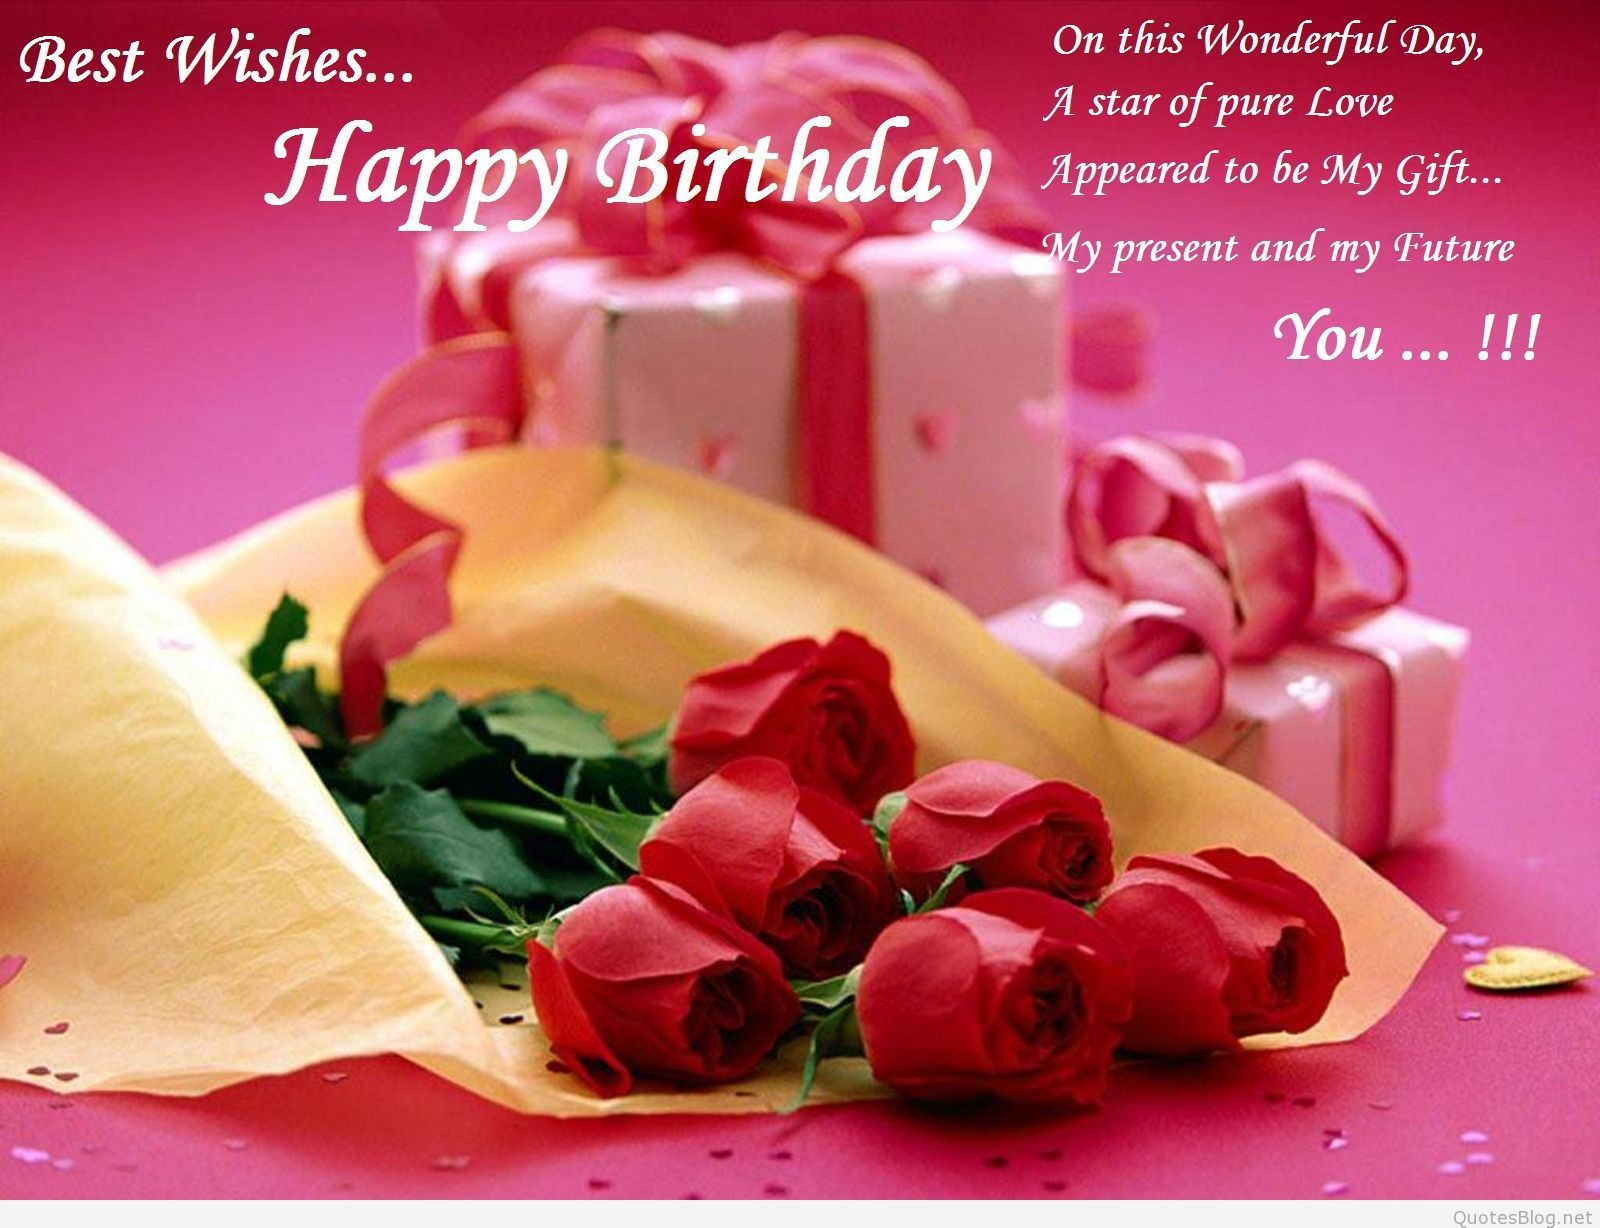 birthday card for lover free download ; 3b9e0fb82bc24530dc3a5bc84b65ac75